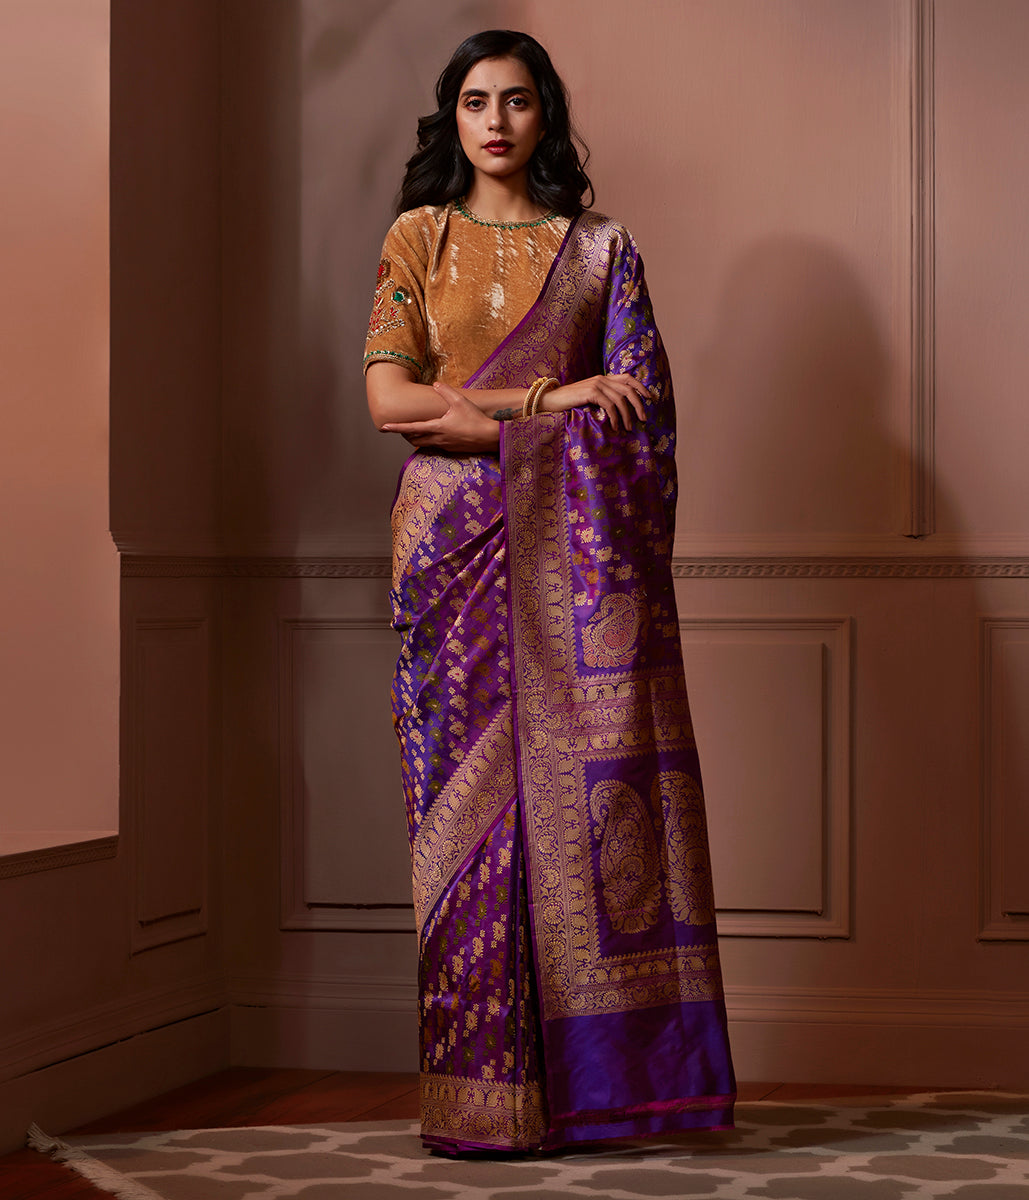 Banaras Baluchari saree in purple with kalka on pallu and kairi booti on pallu